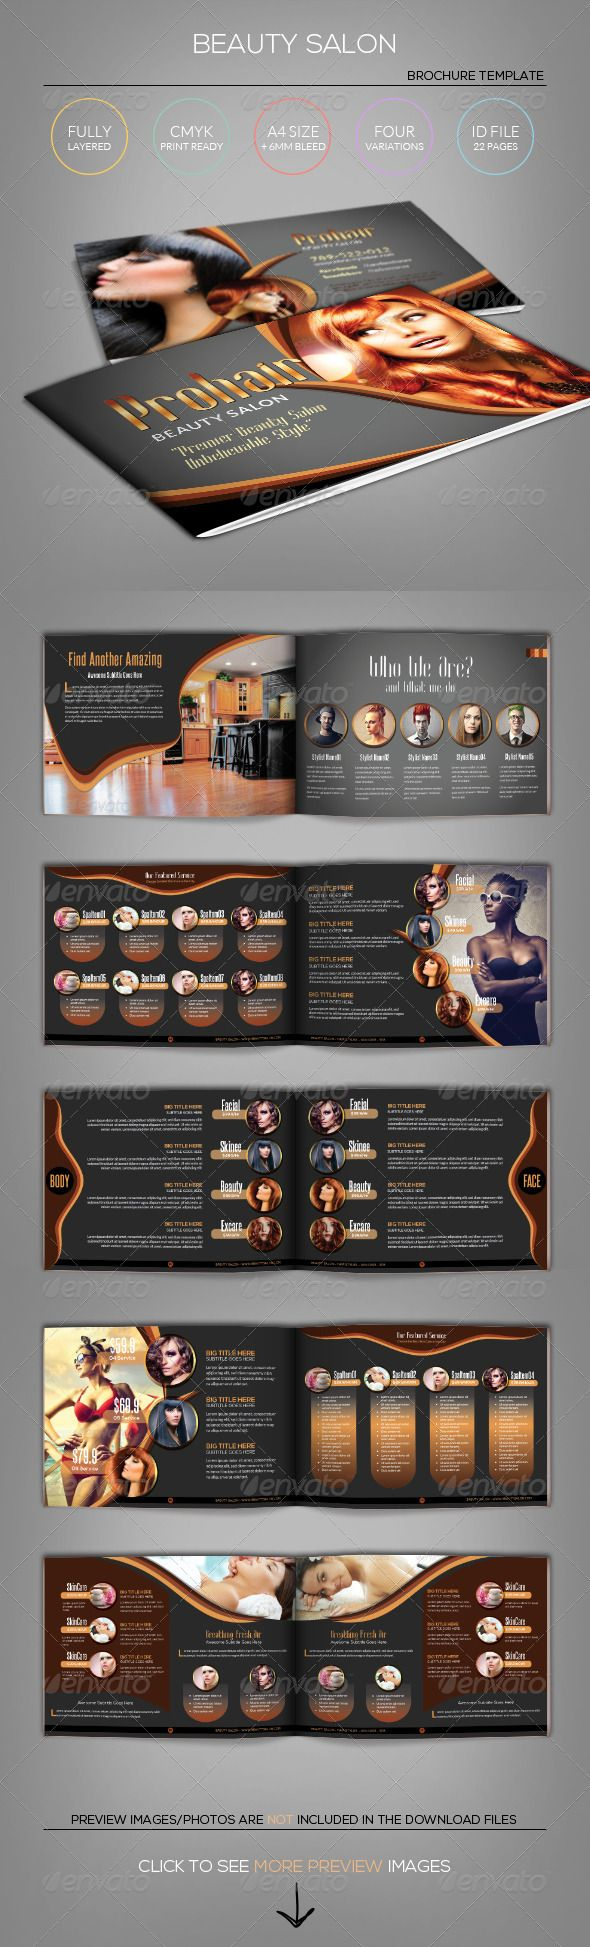 77 best Broucher images on Pinterest | Brochures, Page layout and ...